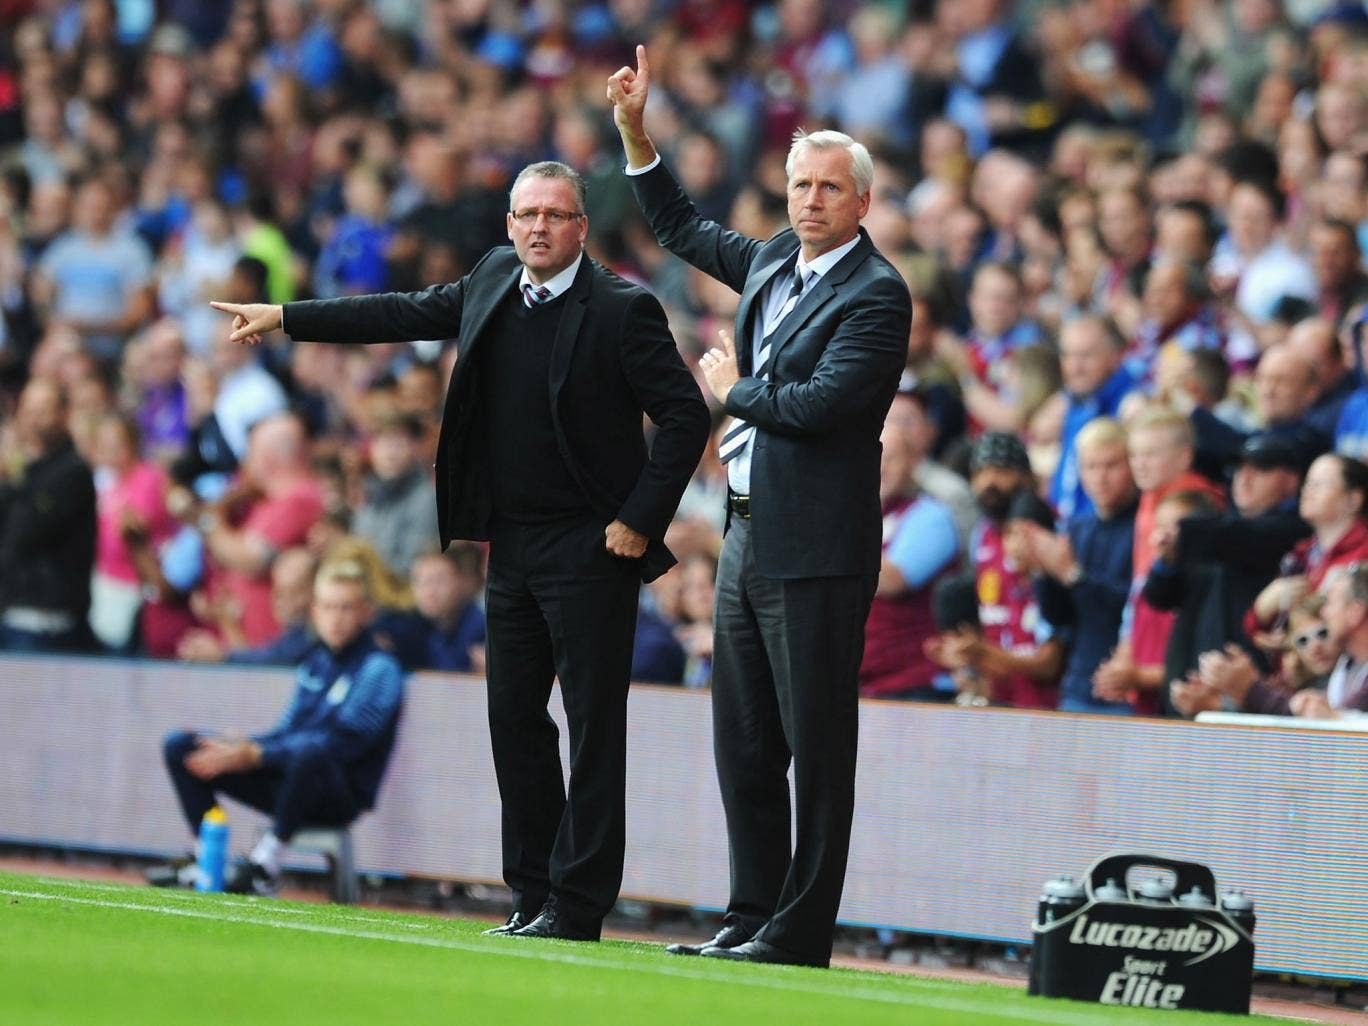 Alan Pardew says Newcastle 'absolutely dominated' and deserved to win against Aston Villa